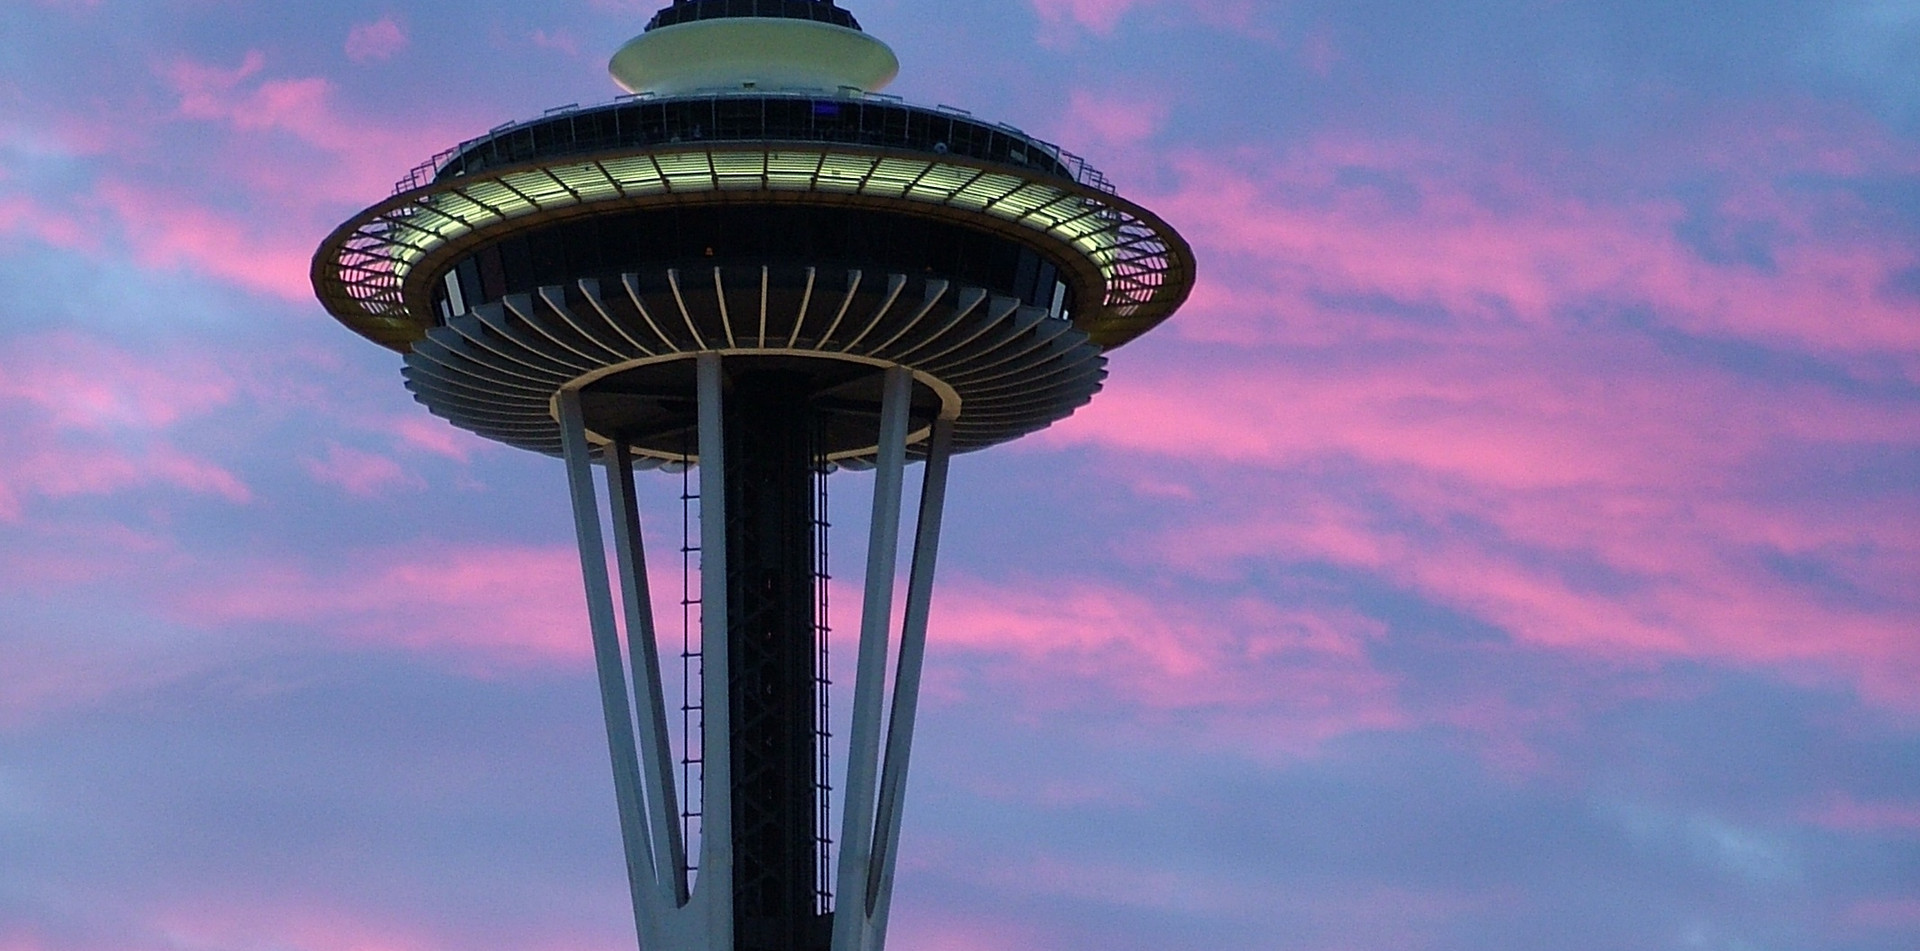 Space Needle at sunset